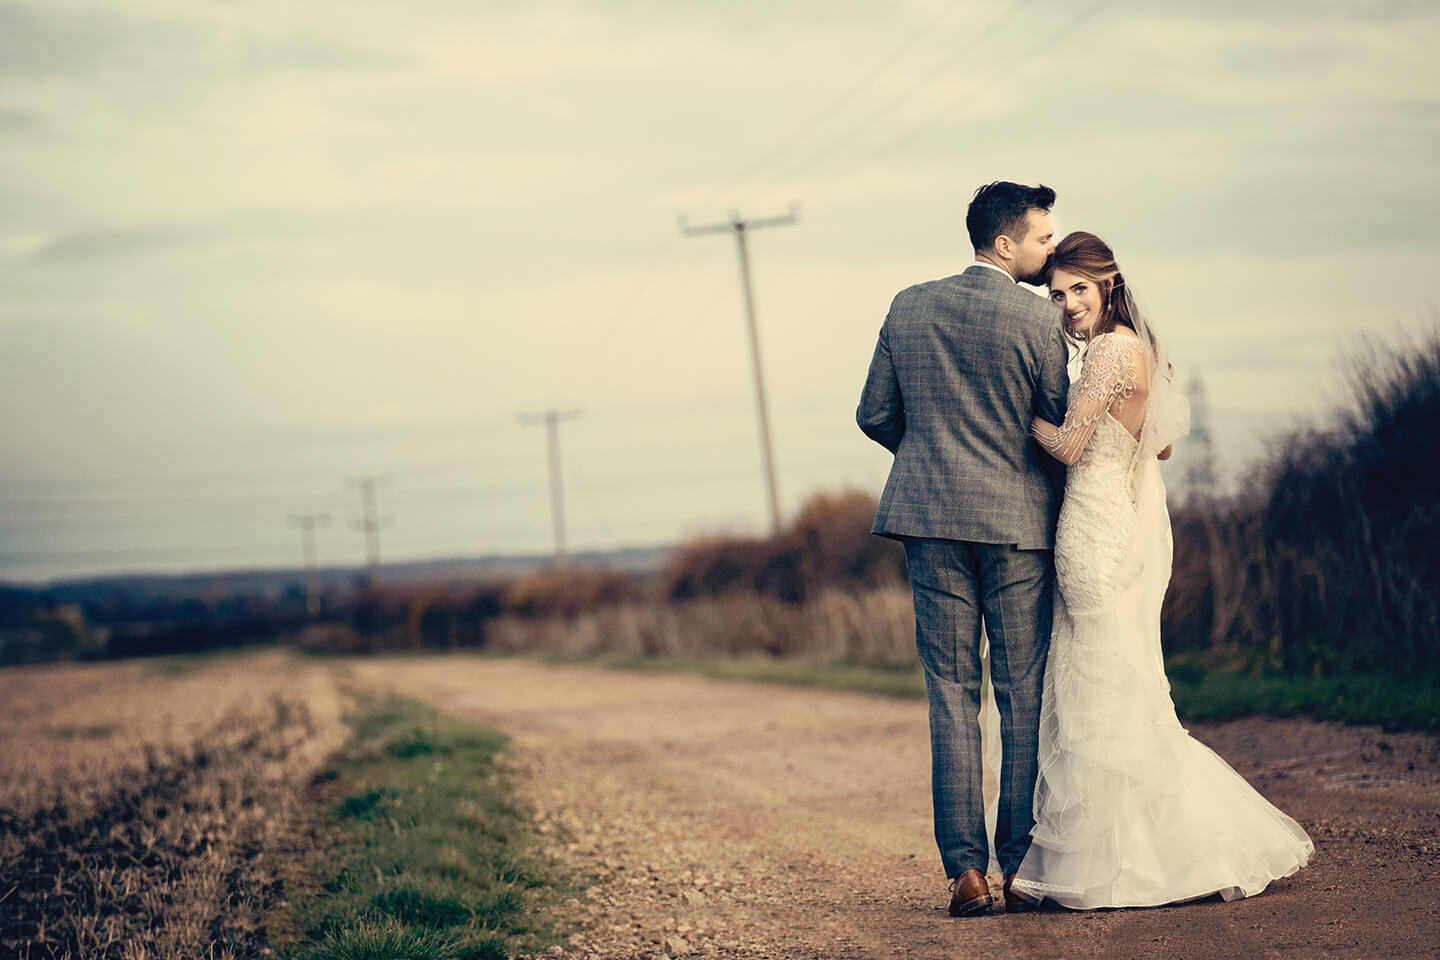 The loved-up couple stroll through the countryside setting at one of the finest wedding venues in Cambridgeshire